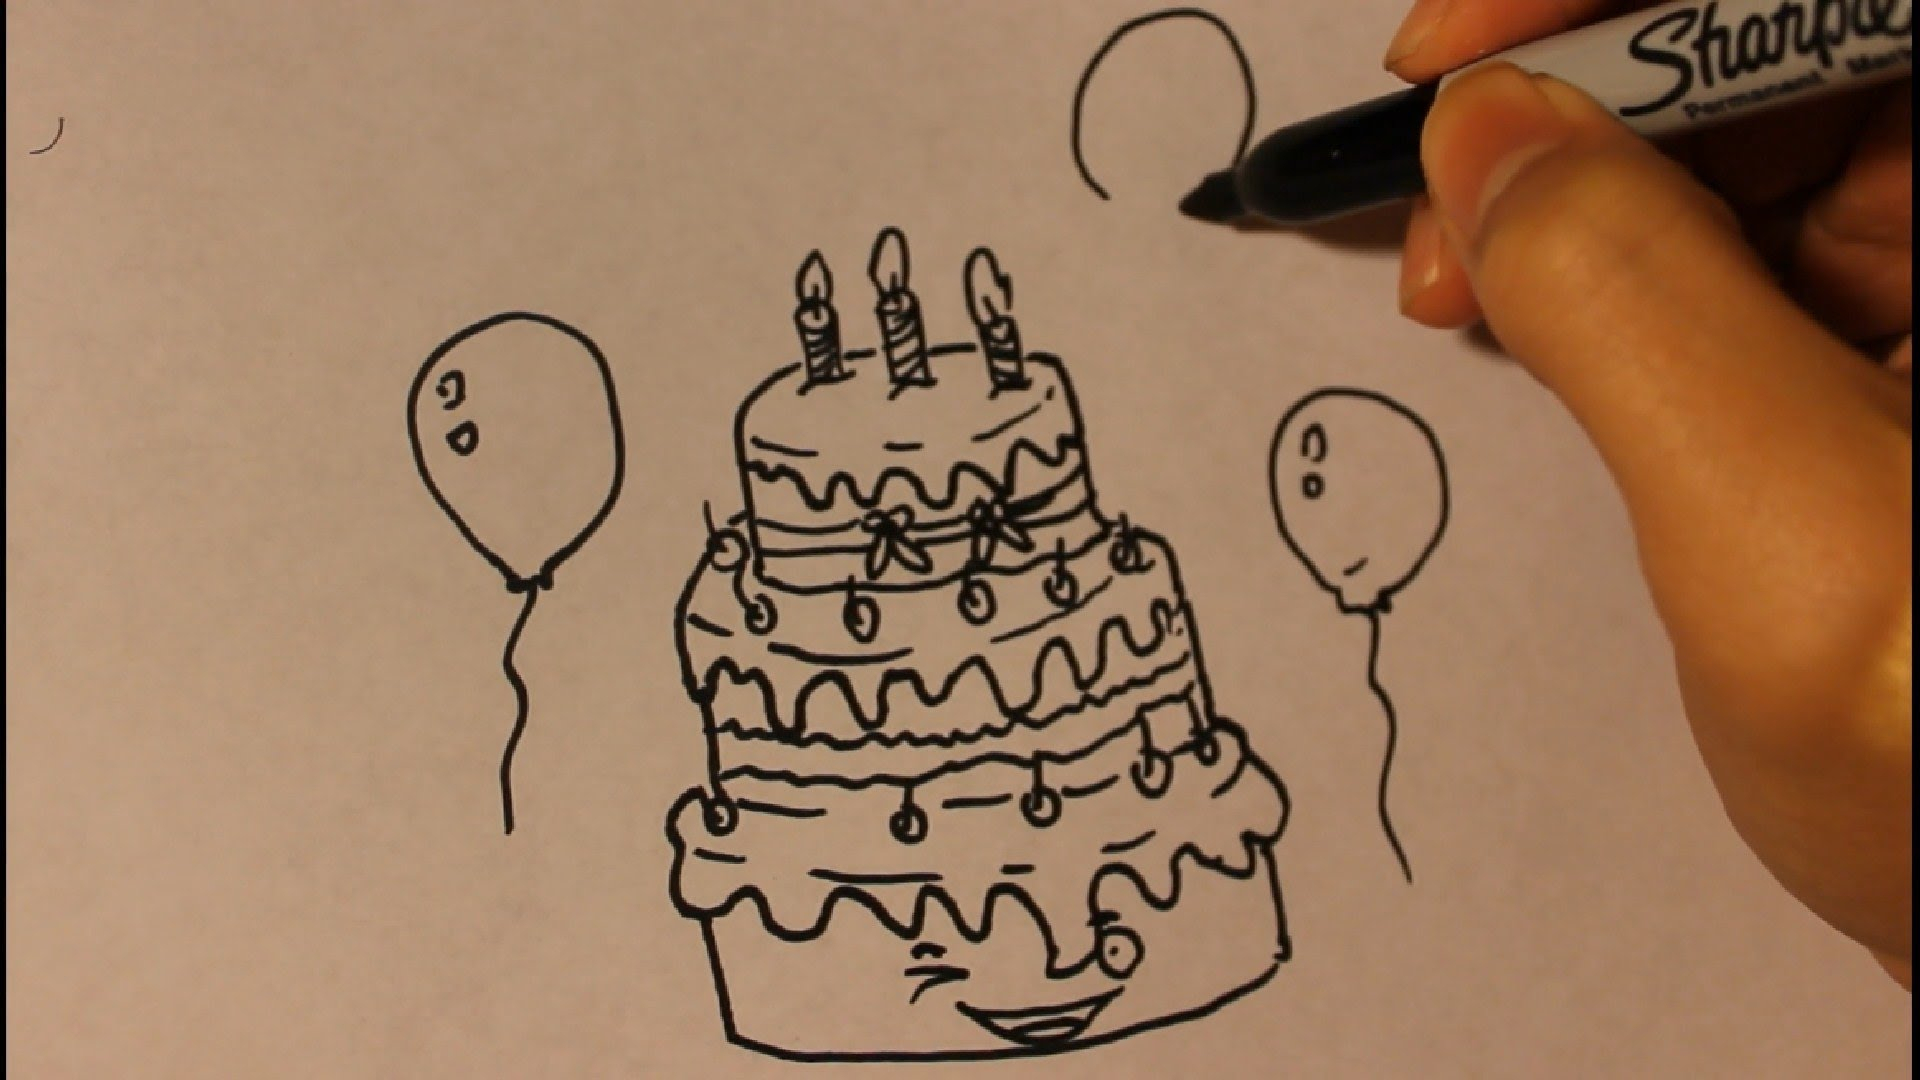 easy birthday drawings ; simple-birthday-cake-drawing-how-to-draw-cartoon-birthday-cake-step-by-step-easy-tutorial-cute